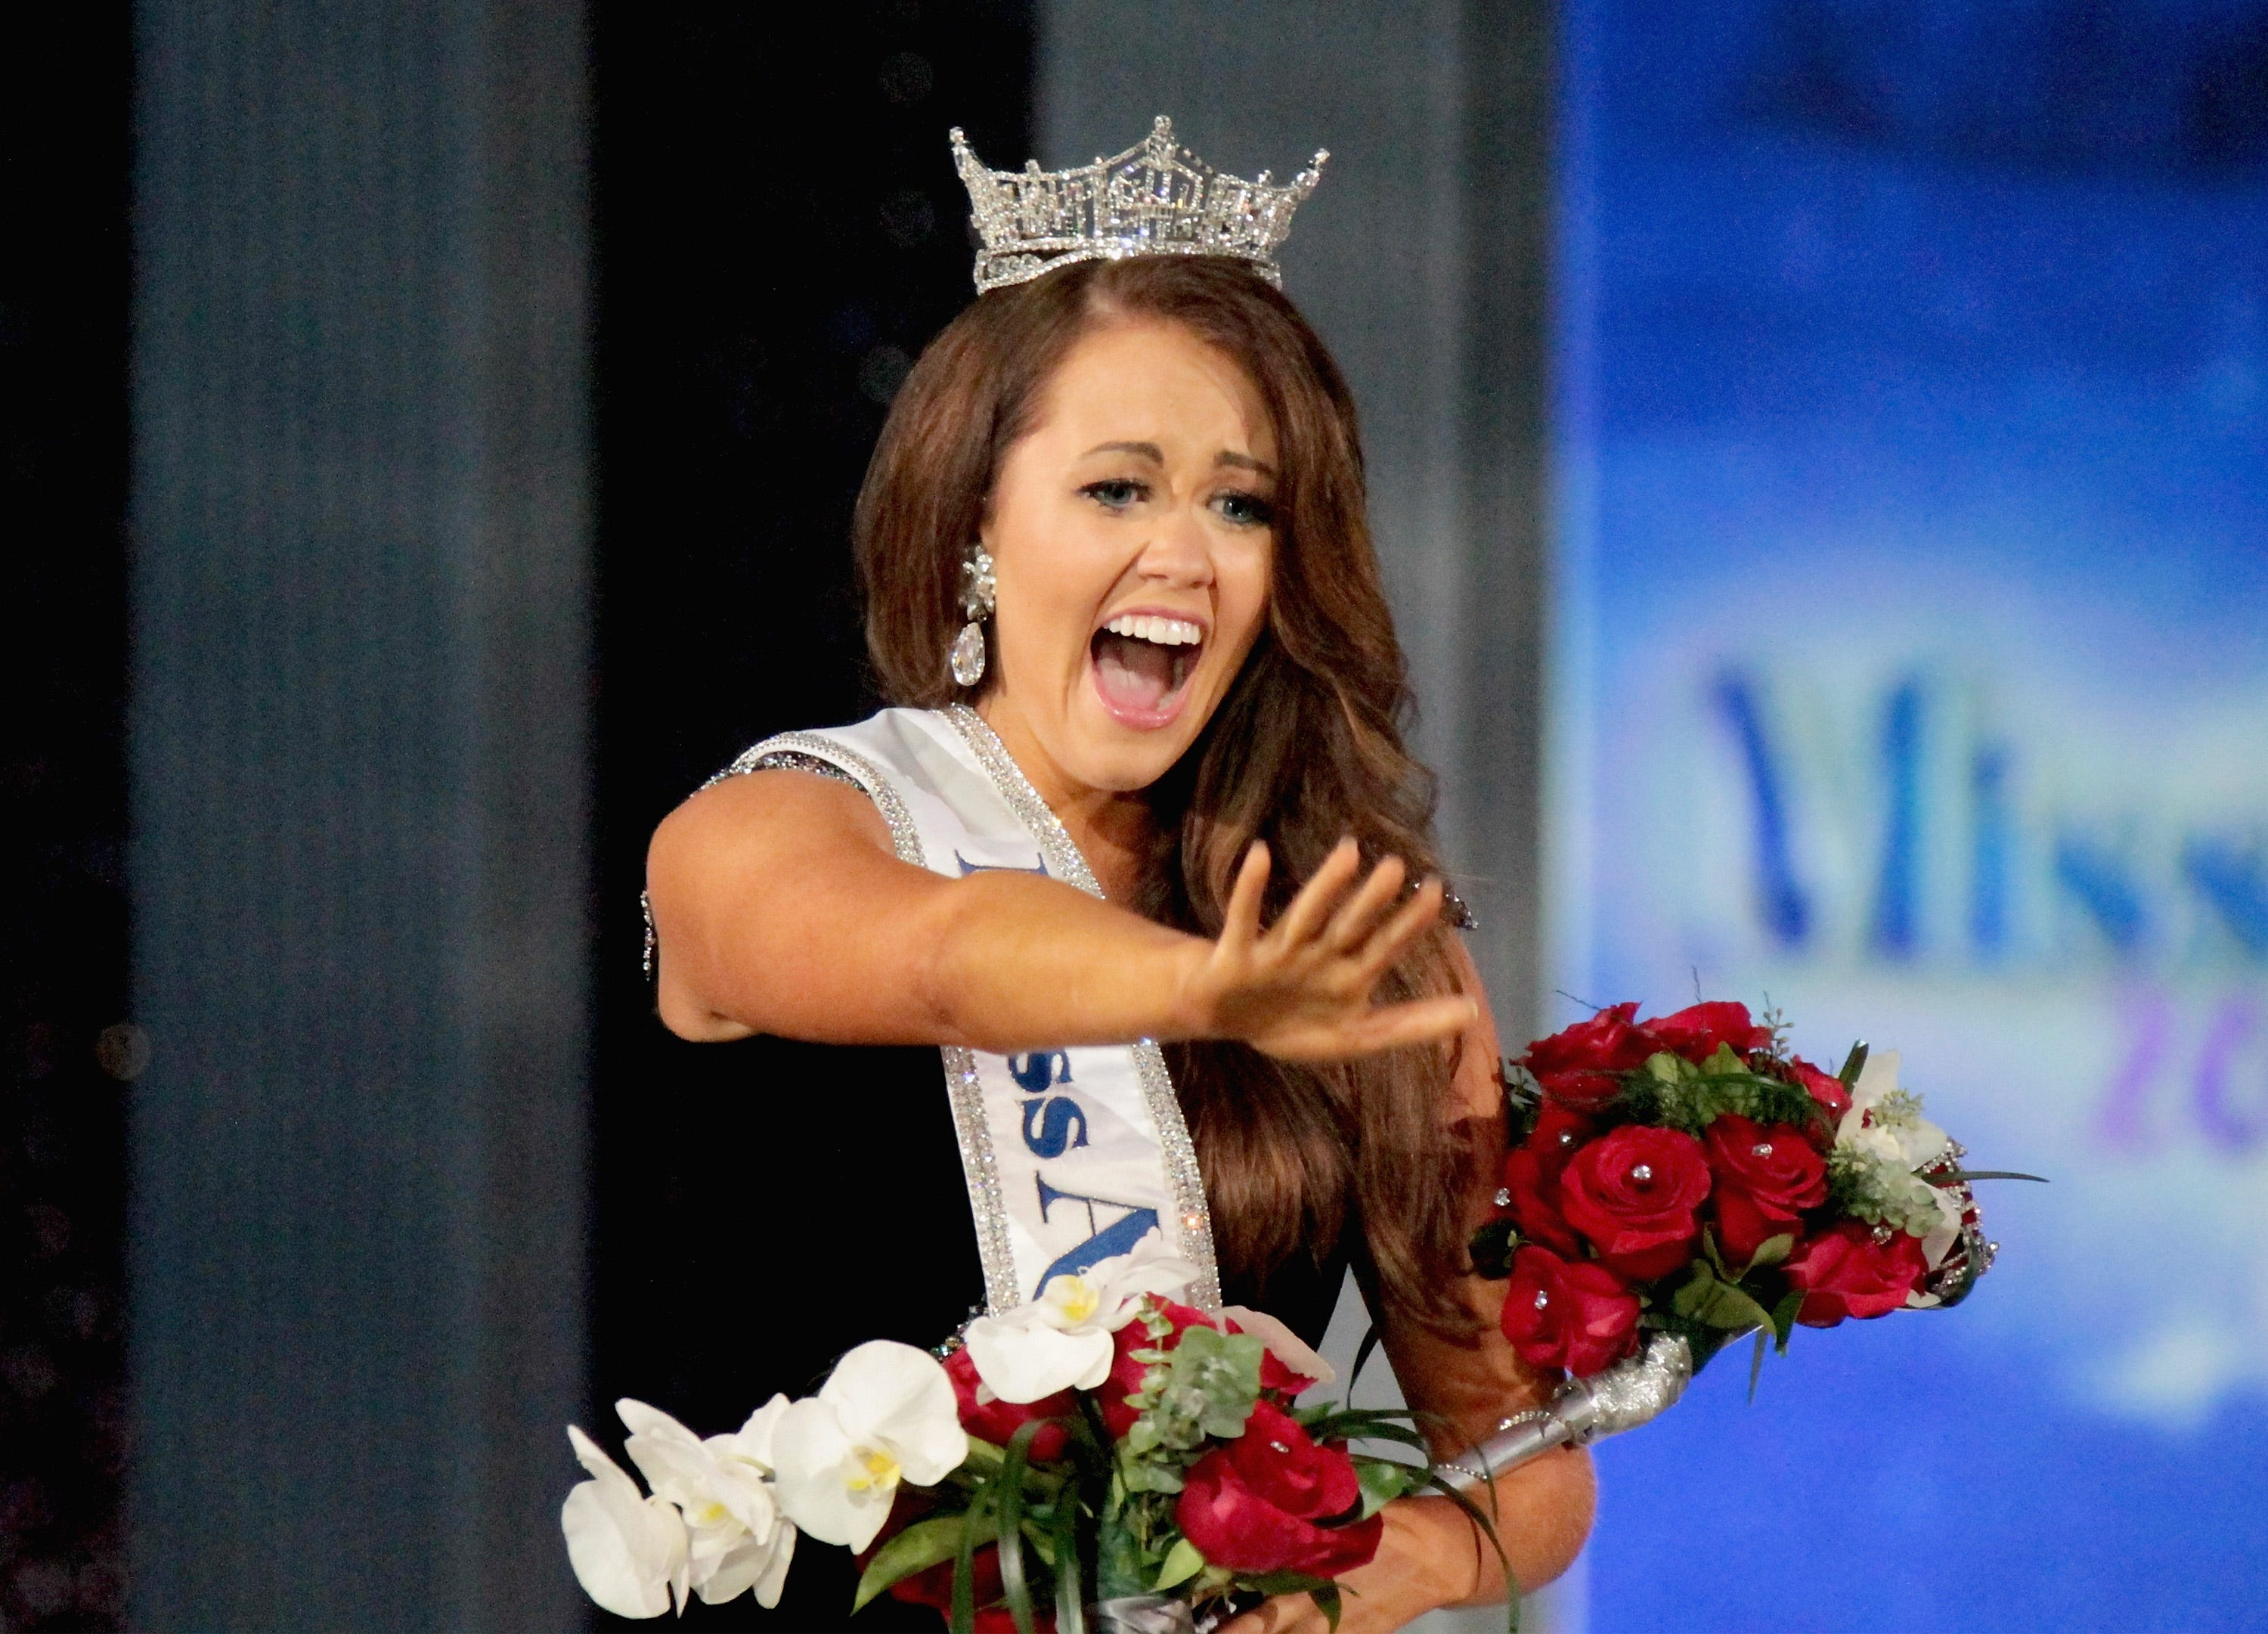 Miss America Cara Mund slams pageant, Gretchen Carlson: They 'silenced me, reduced me'